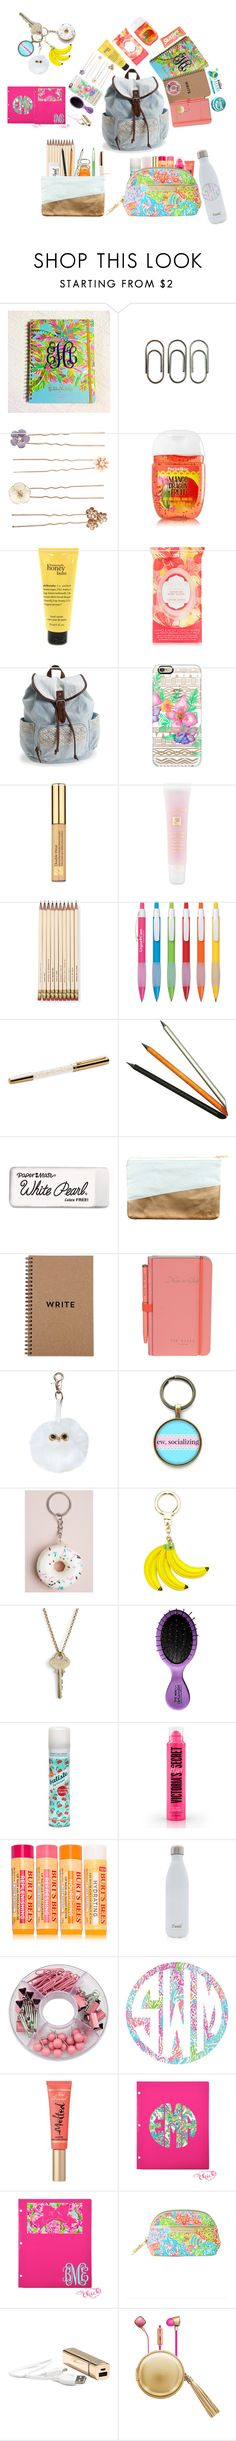 """""""What's in my Backpack/RTD please!"""" by pastelsummer ❤ liked on Polyvore featuring Clips, Accessorize, Pacifica, Aéropostale, Casetify, Estée Lauder, Lancôme, Kate Spade, Jac Zagoory Designs and Paper Mate"""